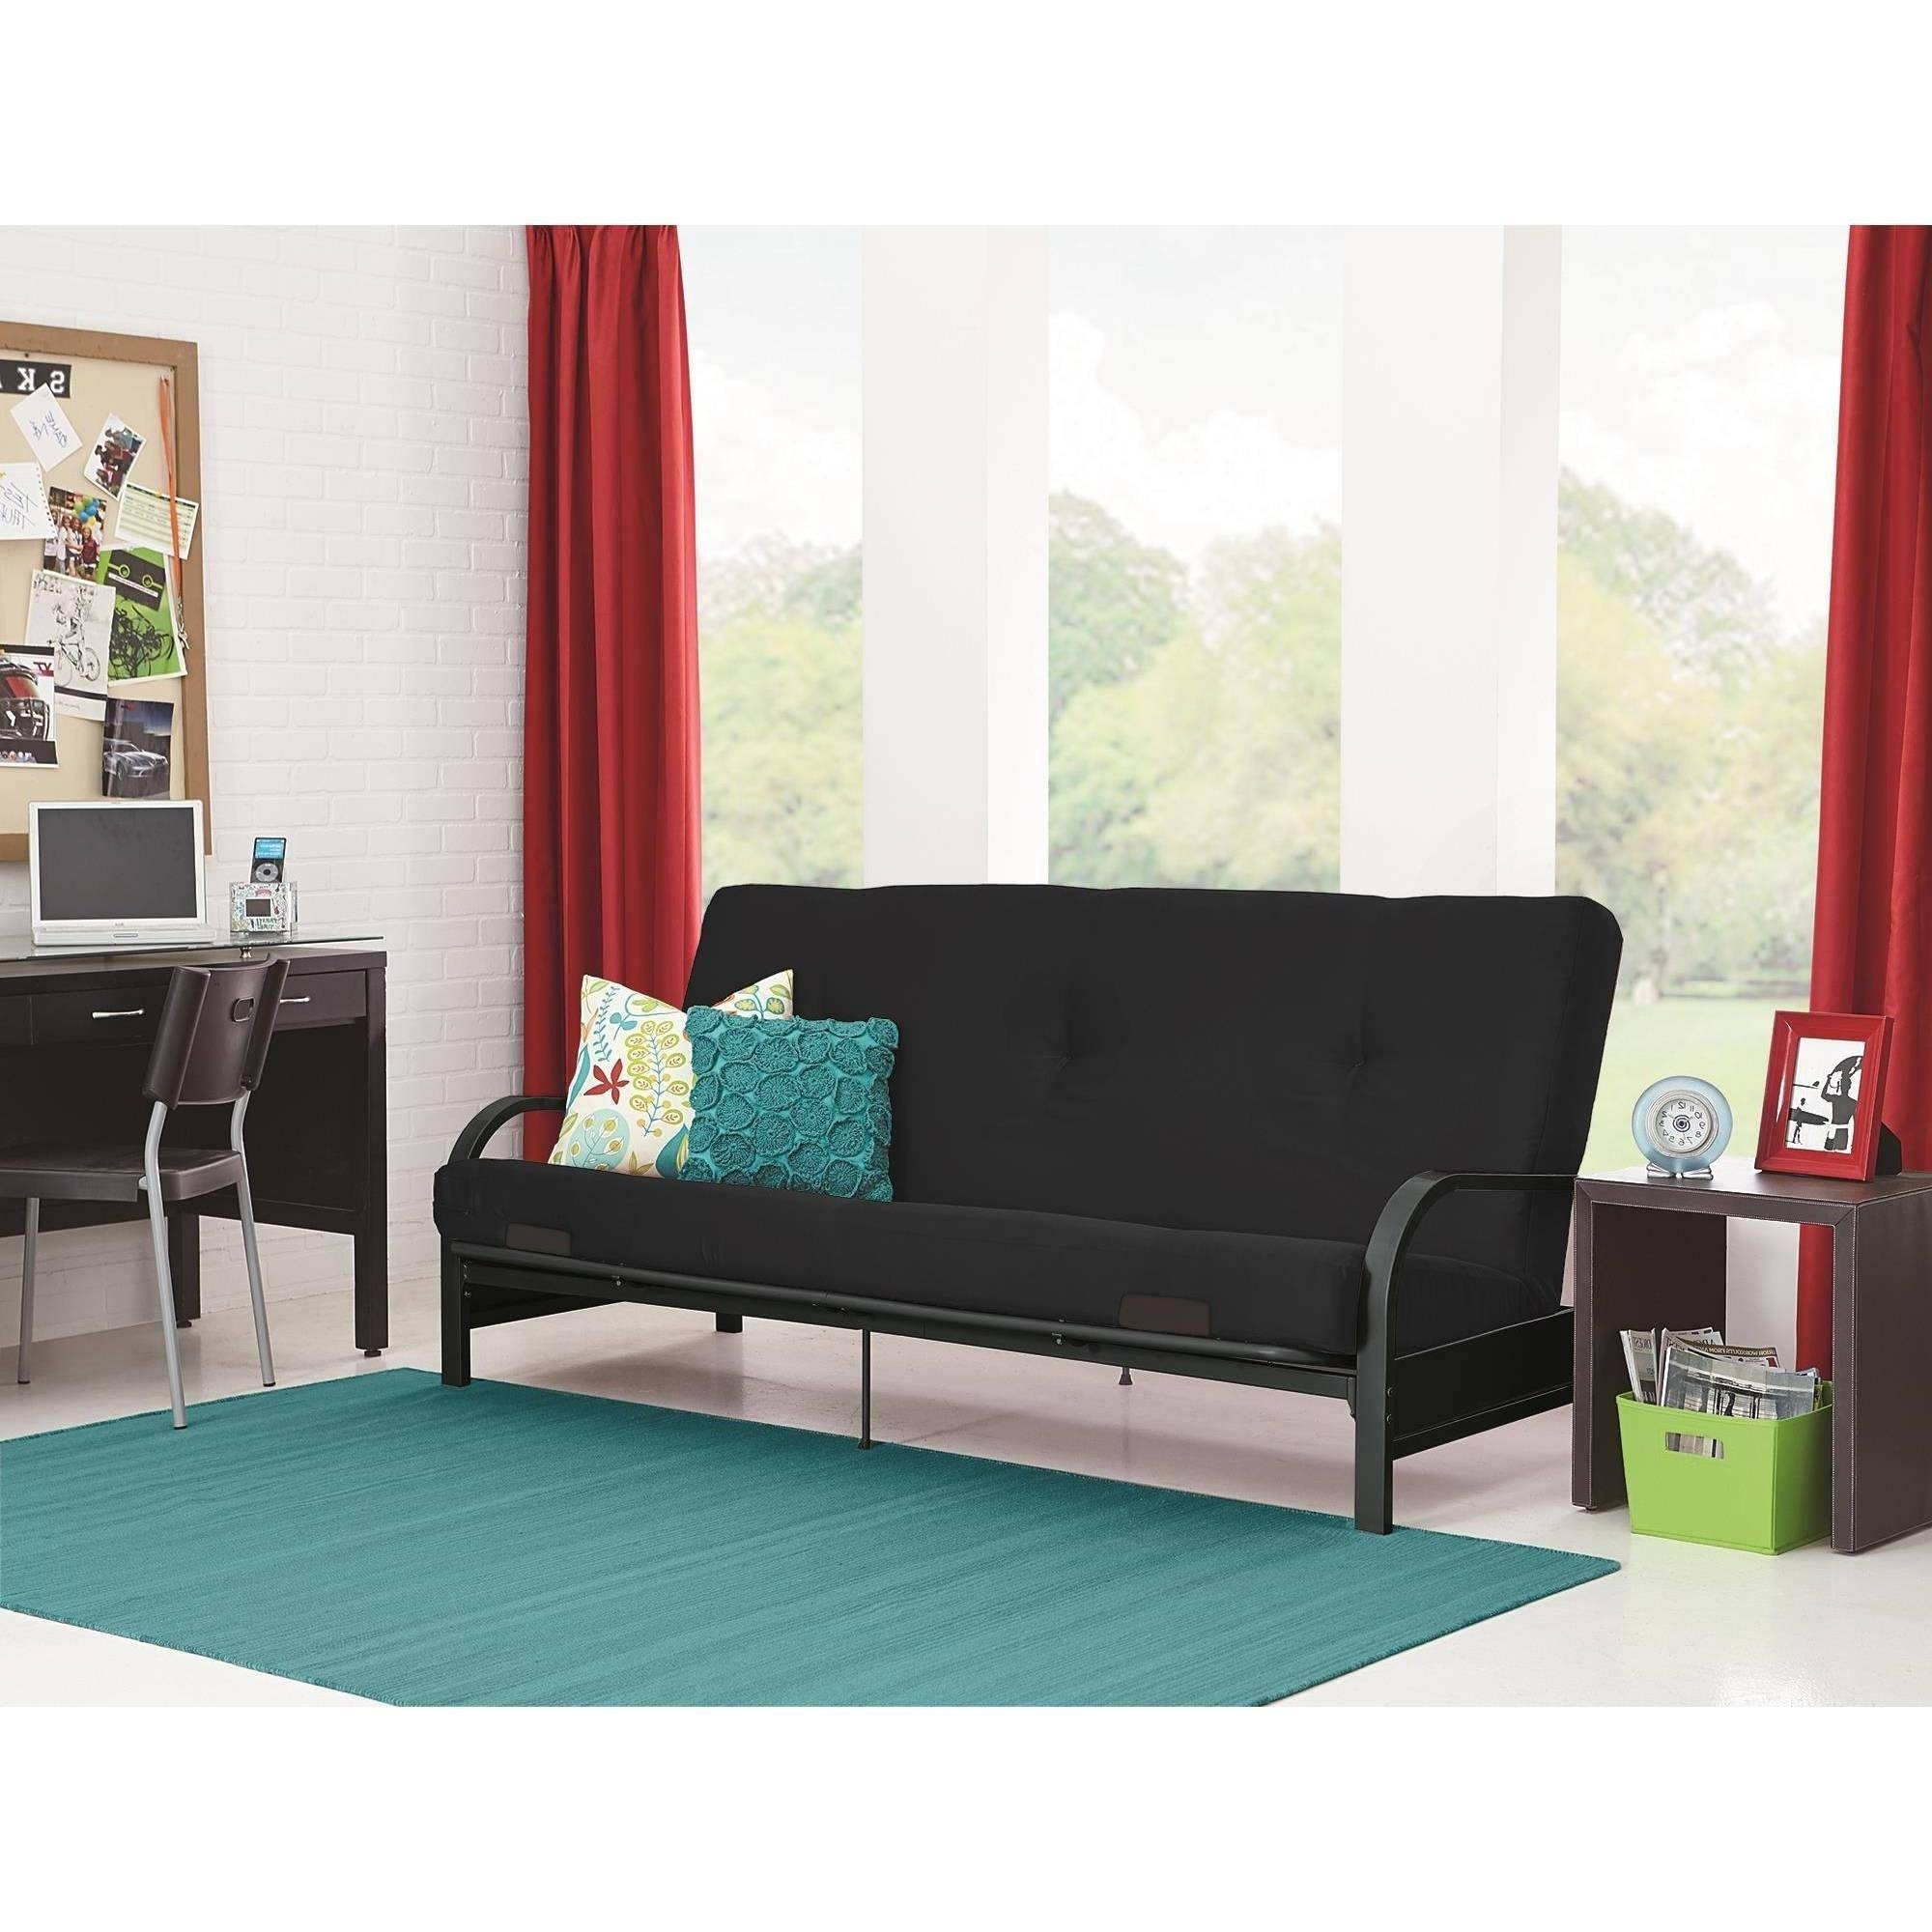 Mainstays Contempo Futon Sofa Bed 96 With In Beds